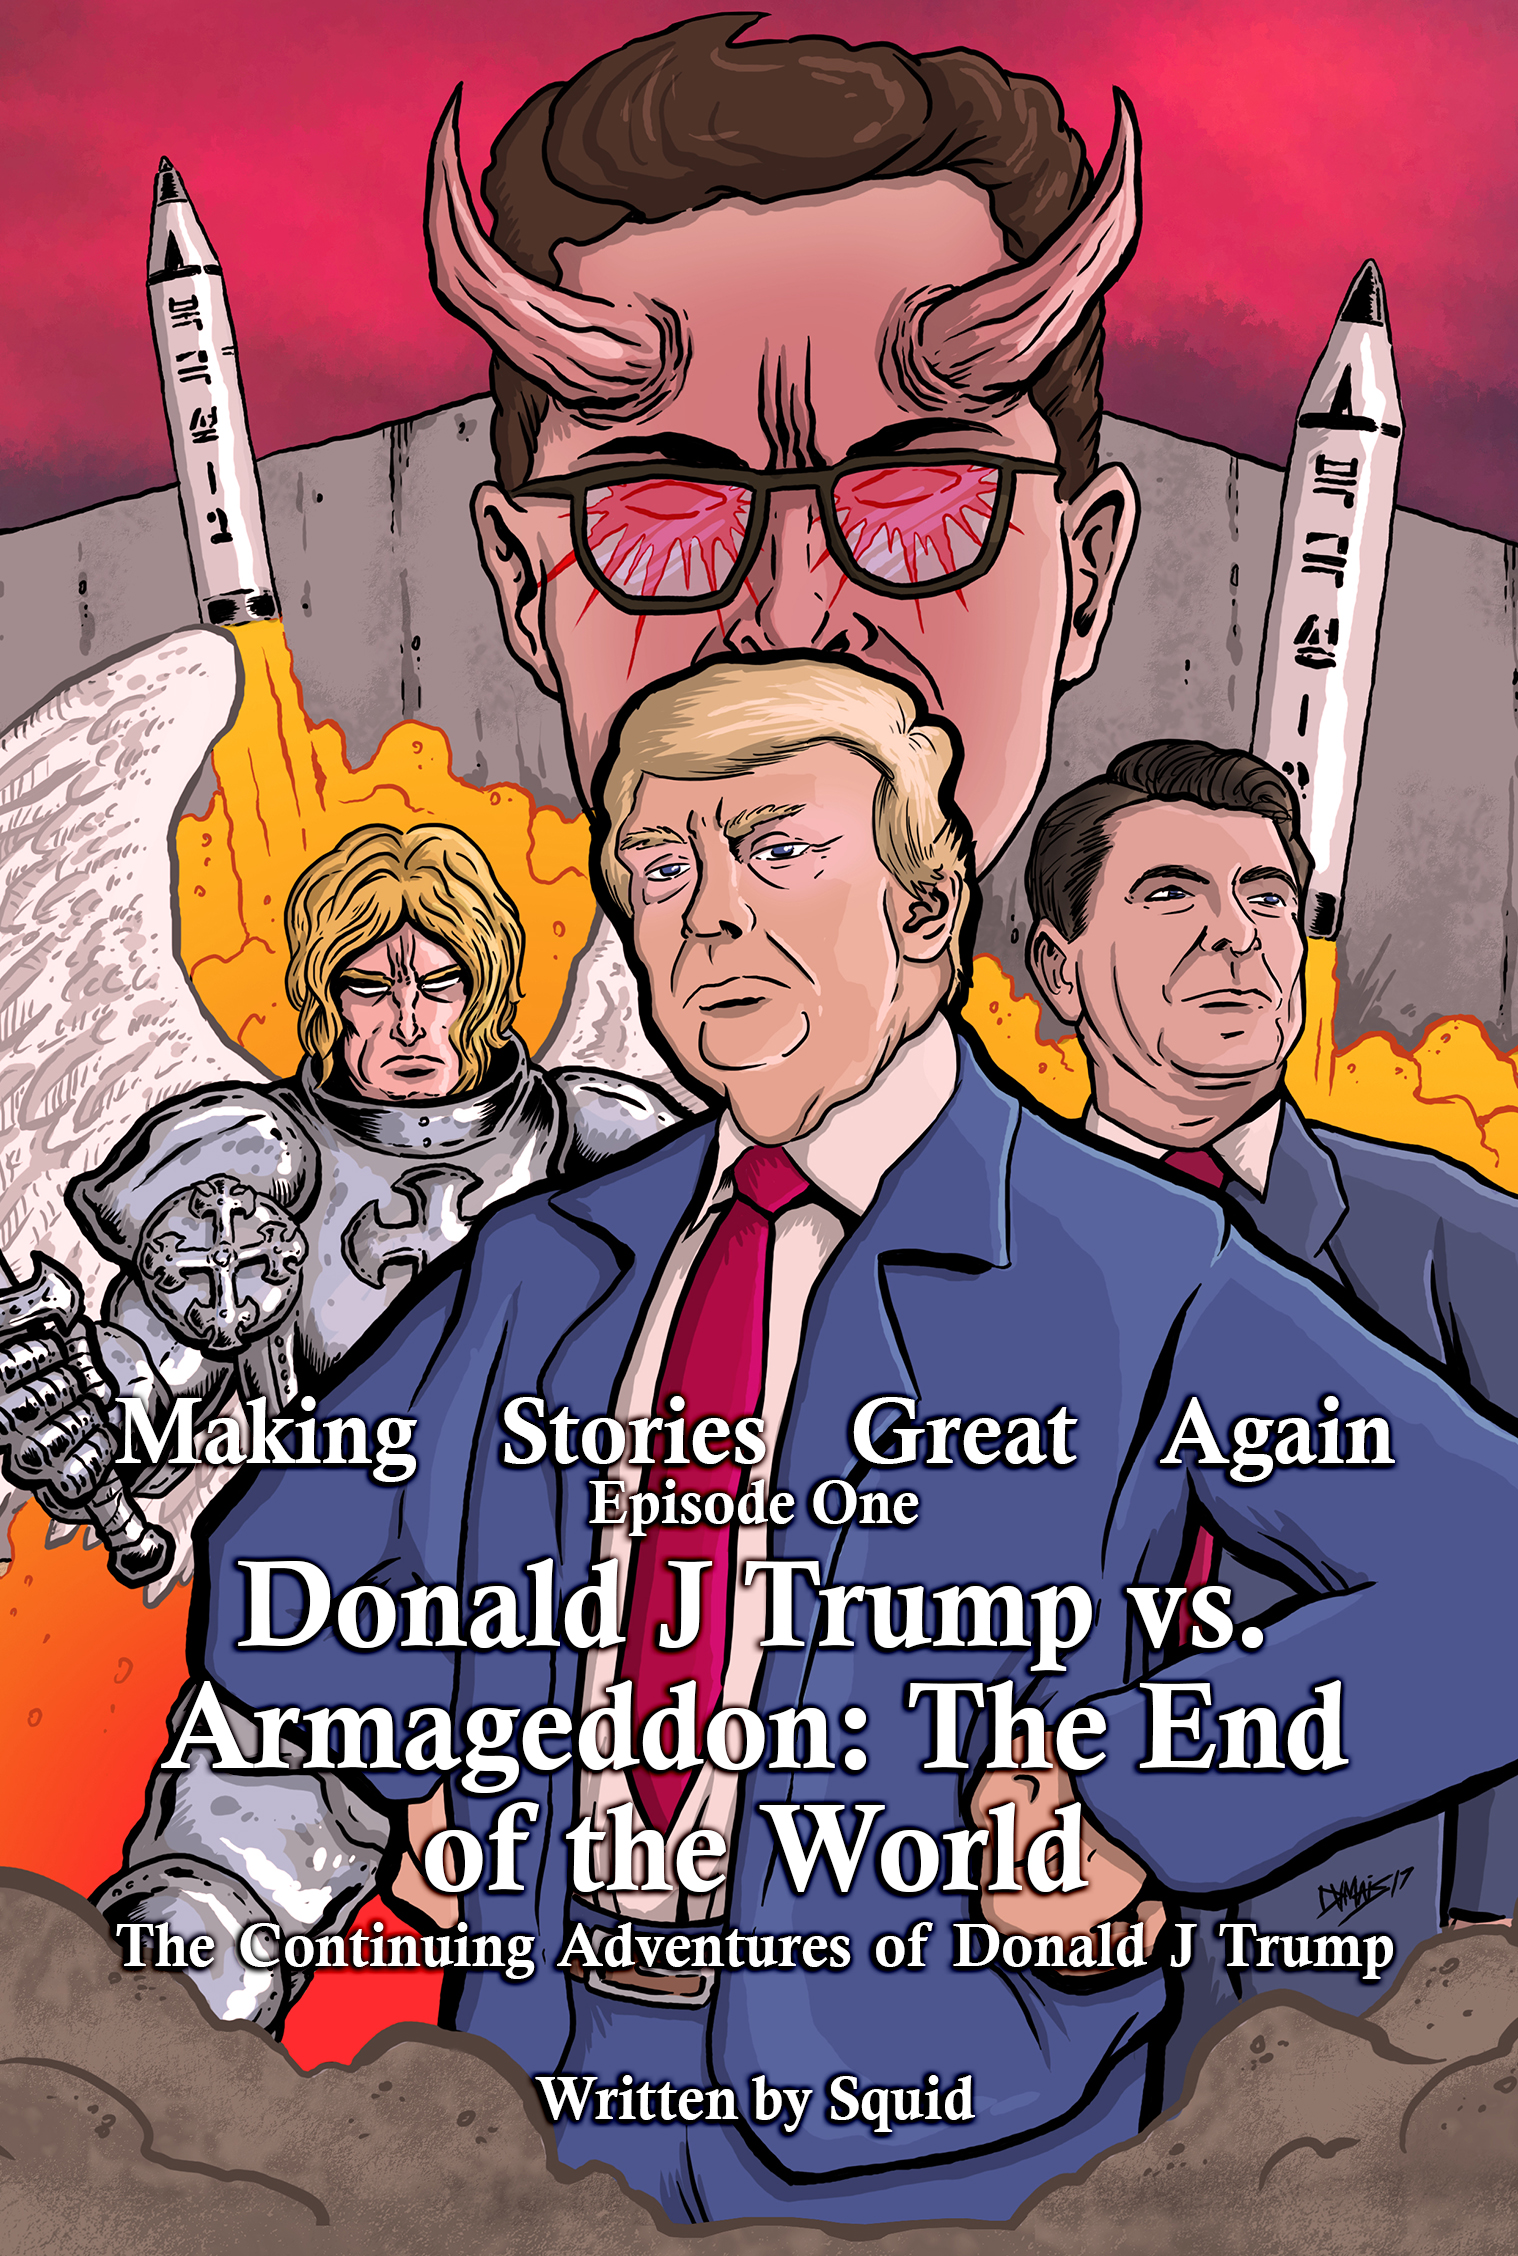 Making Stories Great Again Episode One Donald J Trump vs Armageddon: The End of the World: The Continuing Adventures of Donald J Trump